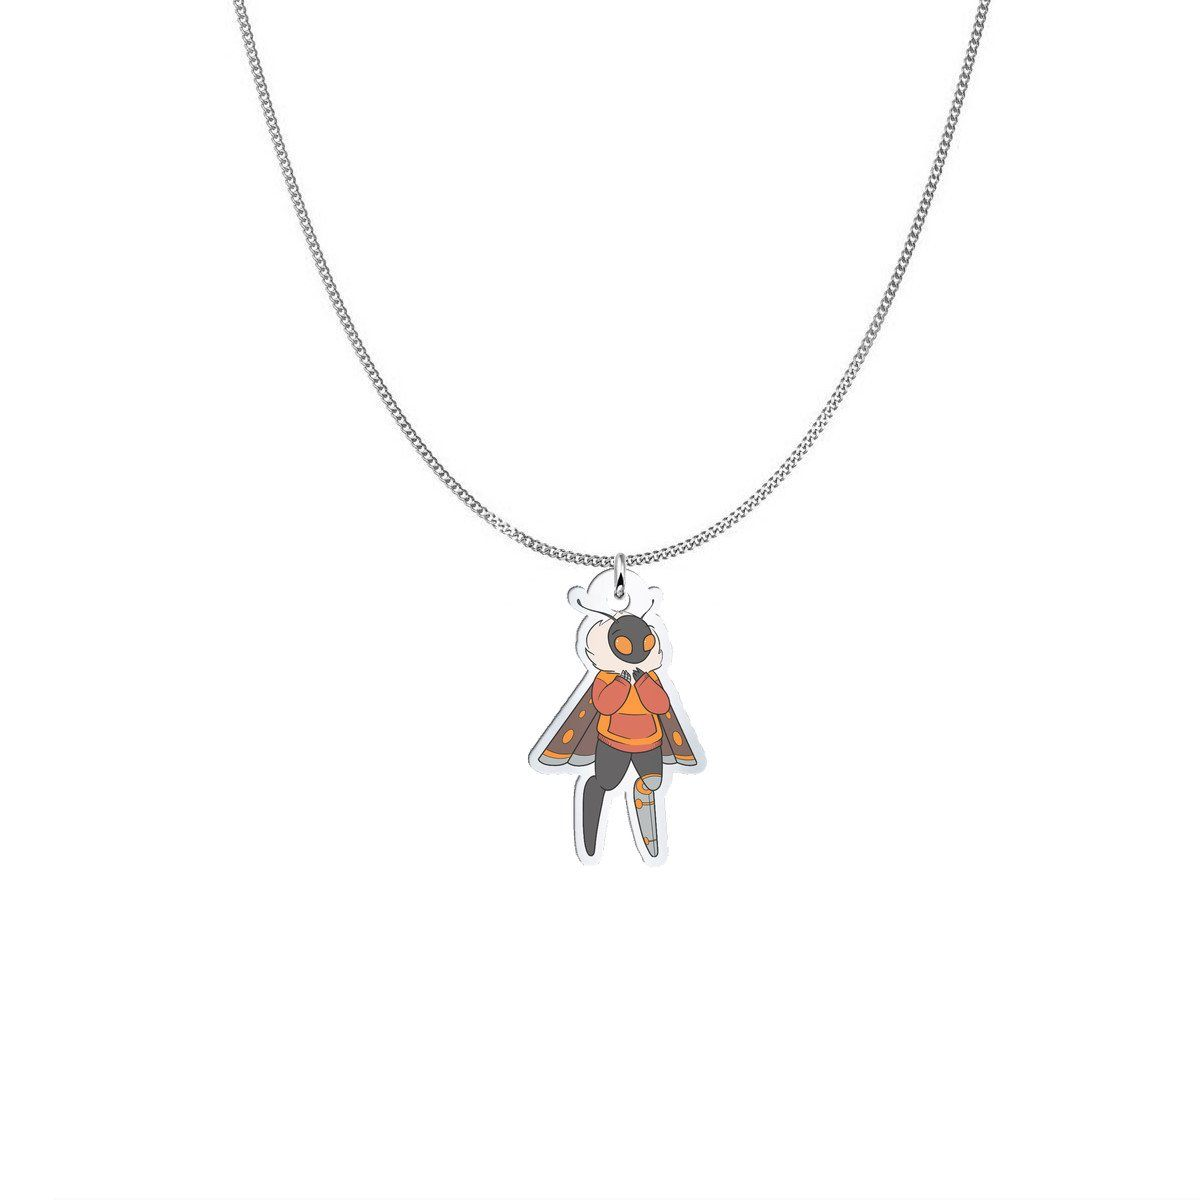 Pendant - Toni The Amputee Monster Silver Necklace